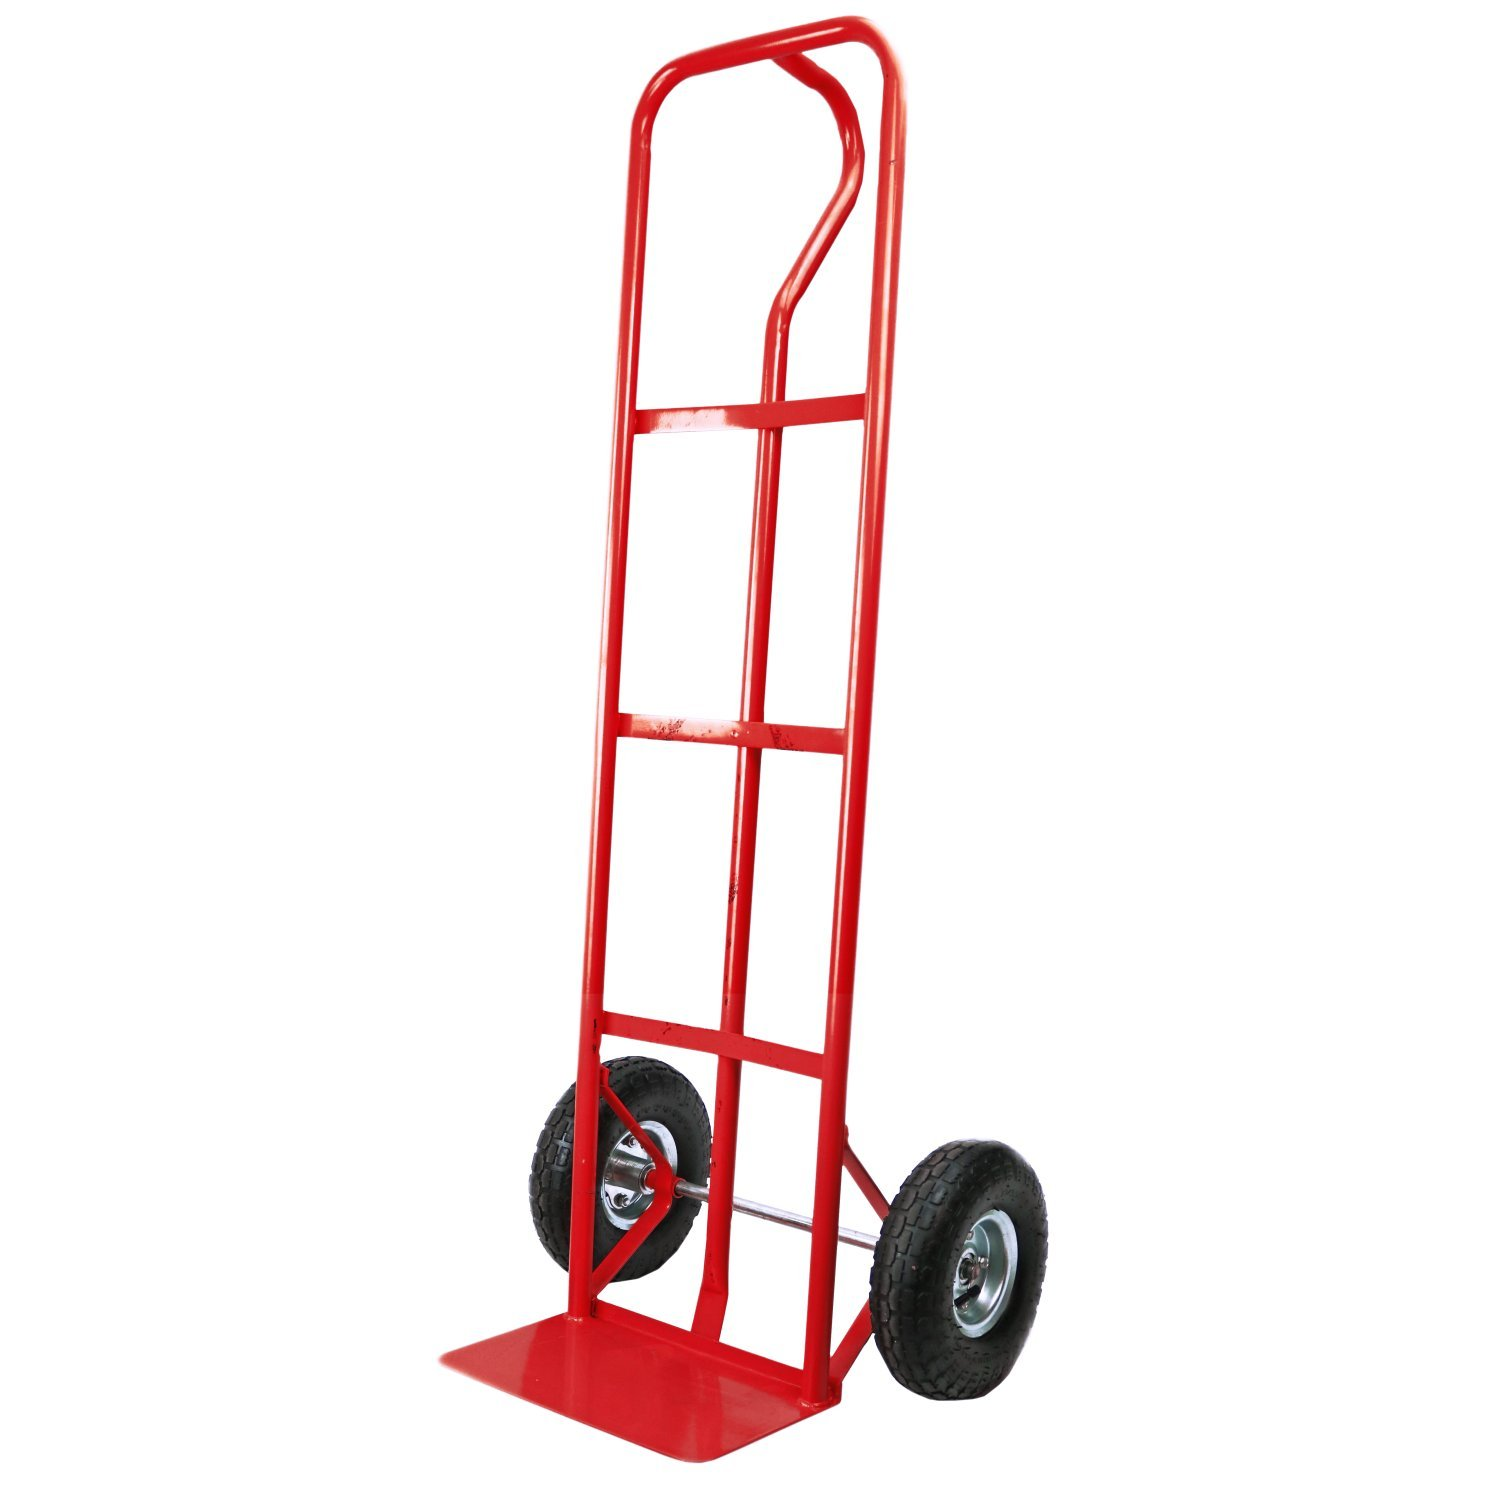 600lb industrial heavy duty hand trolley sack truck red for Industrial garden tools